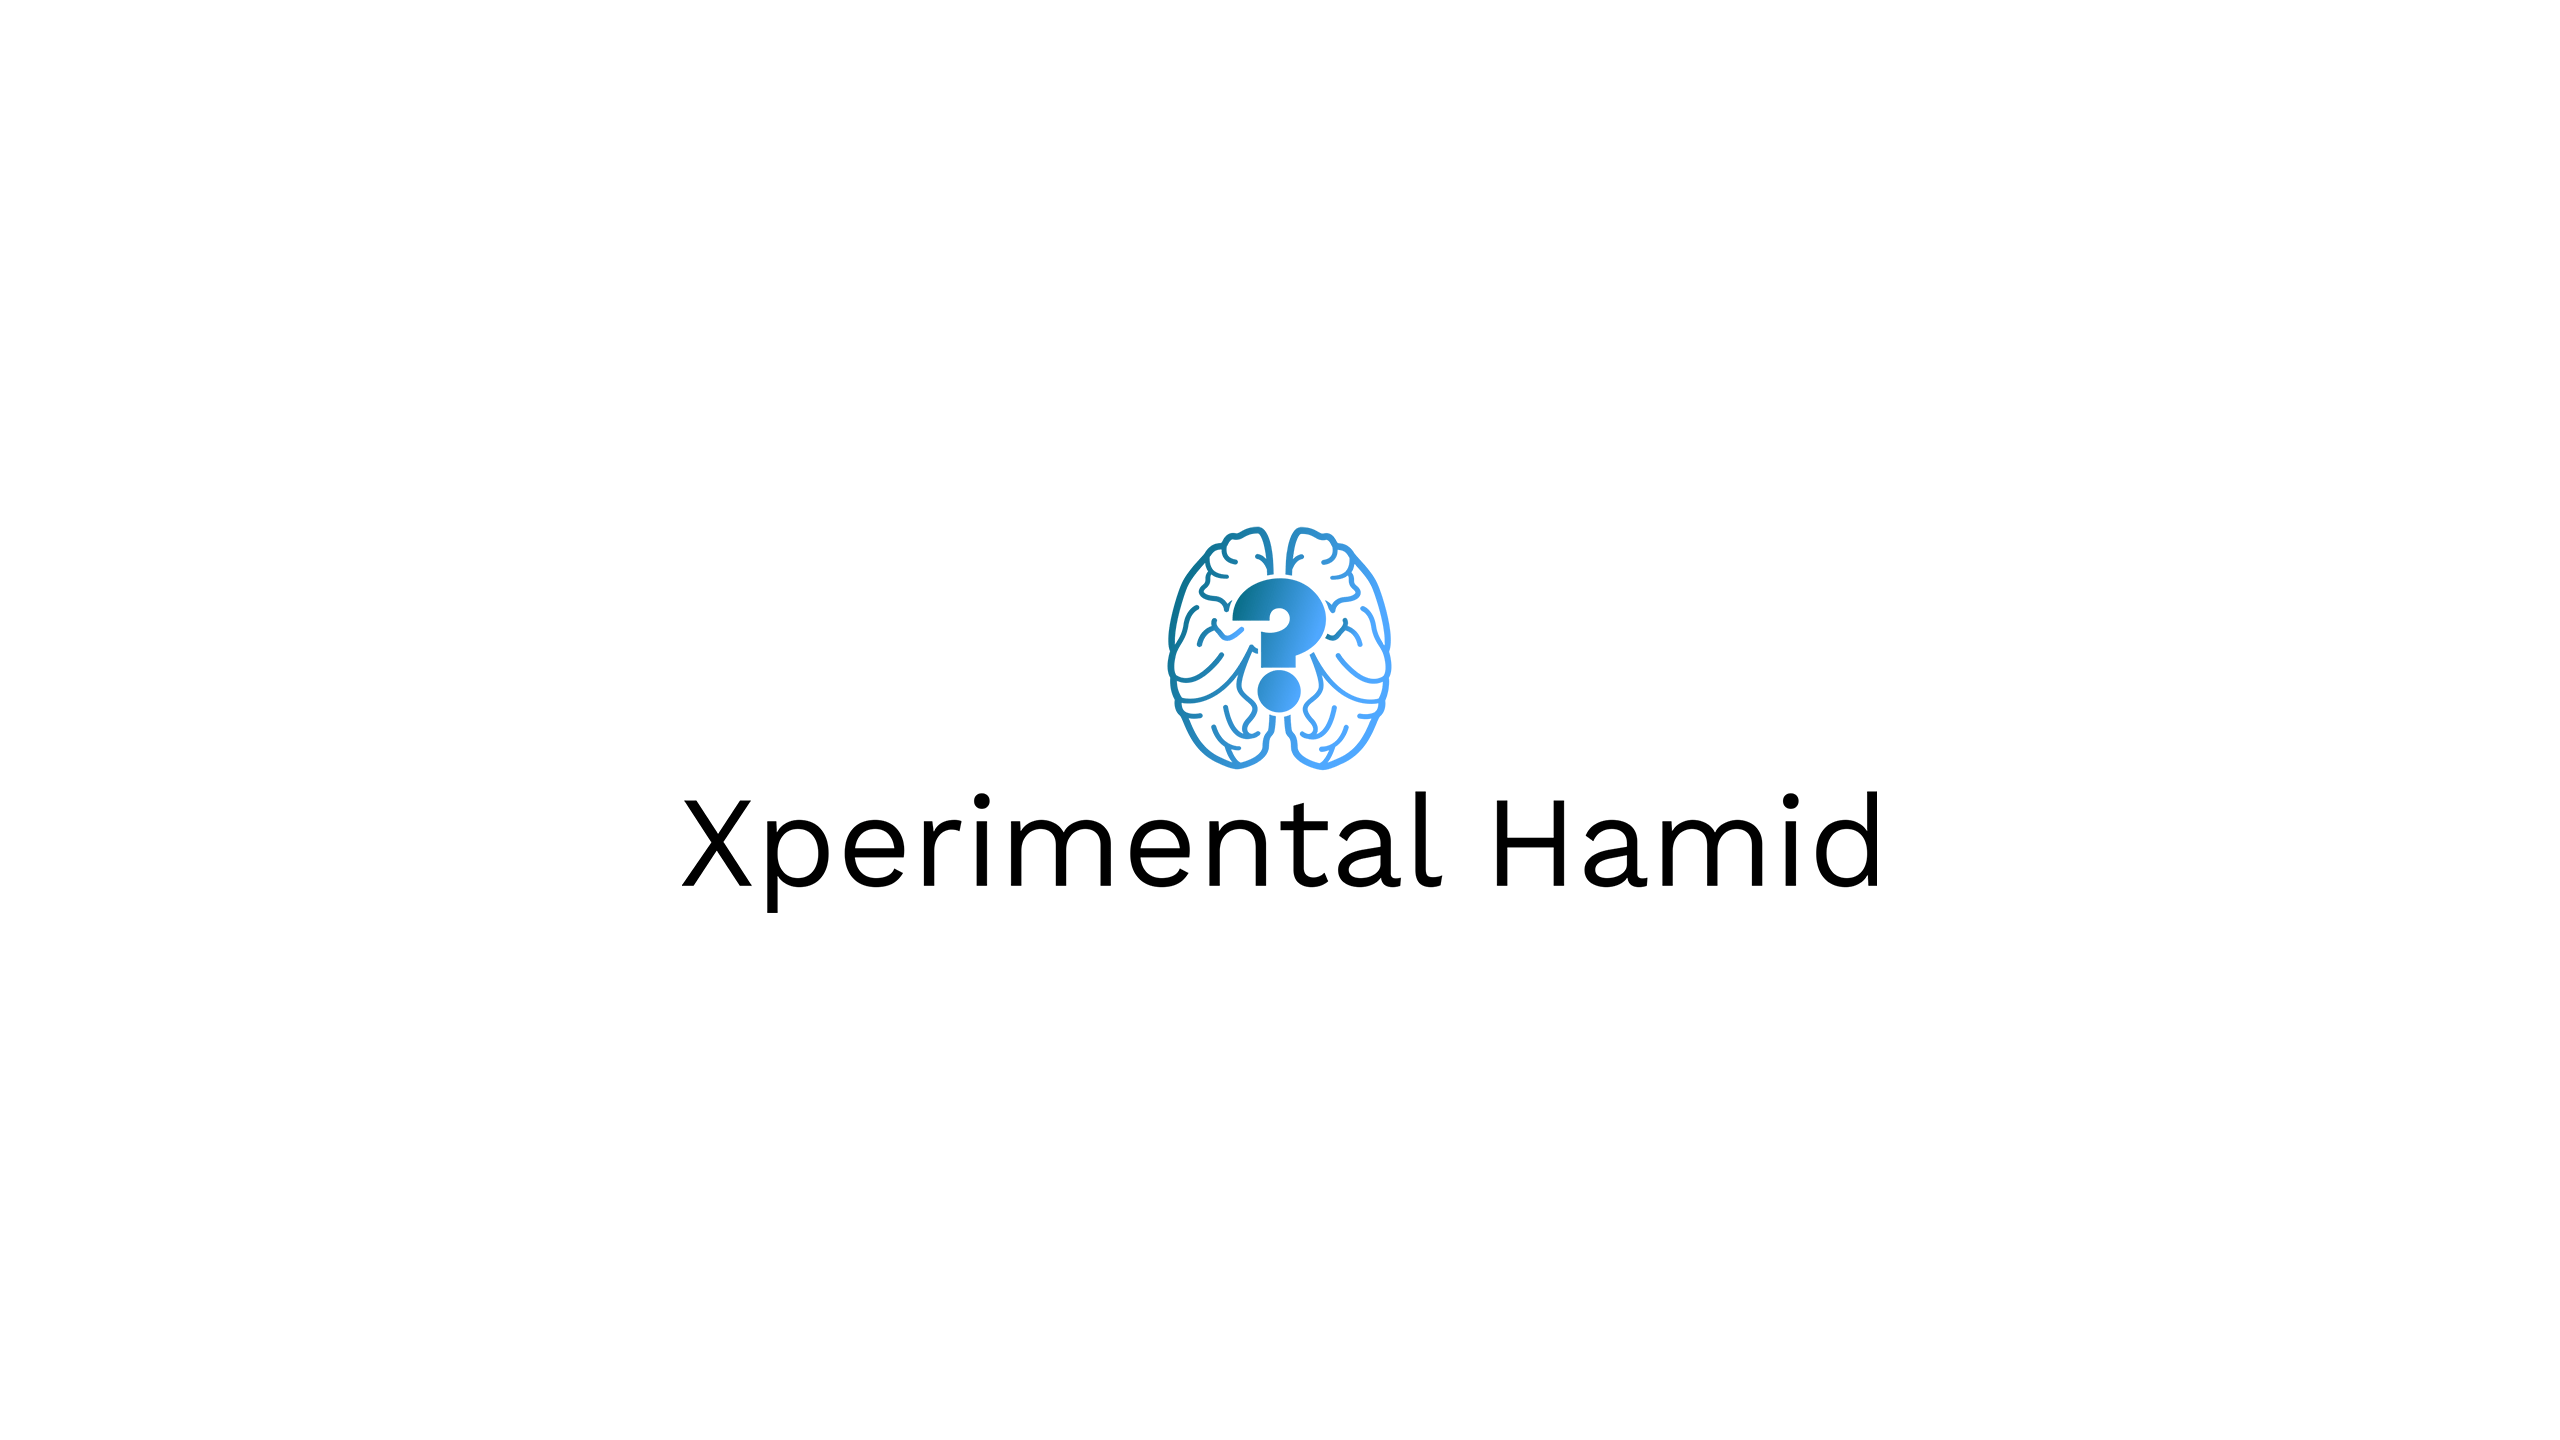 Xperimental Hamid Official Logo Cover